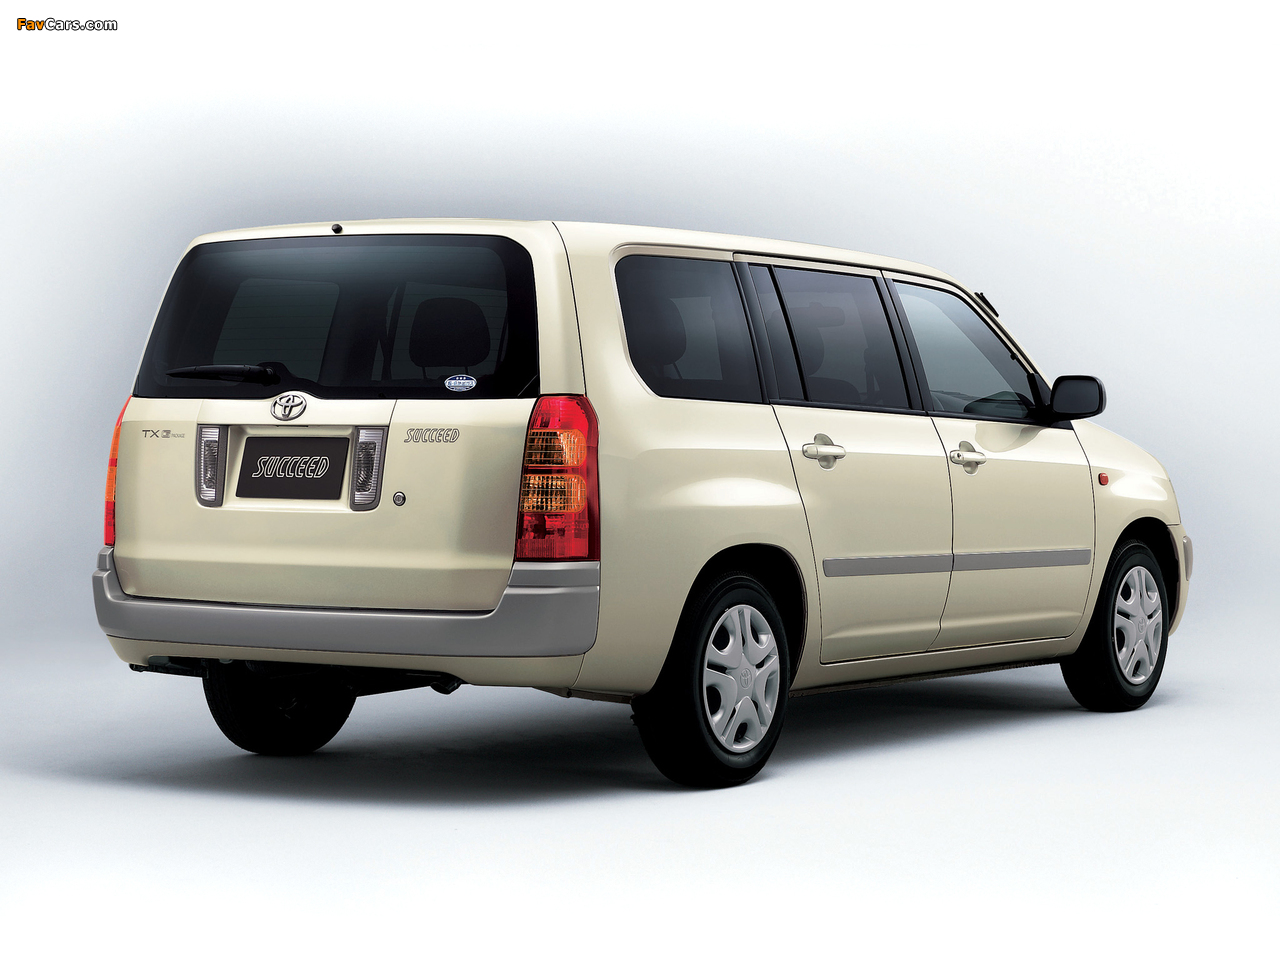 Toyota Succeed Wagon (CP50) 2002 images (1280 x 960)